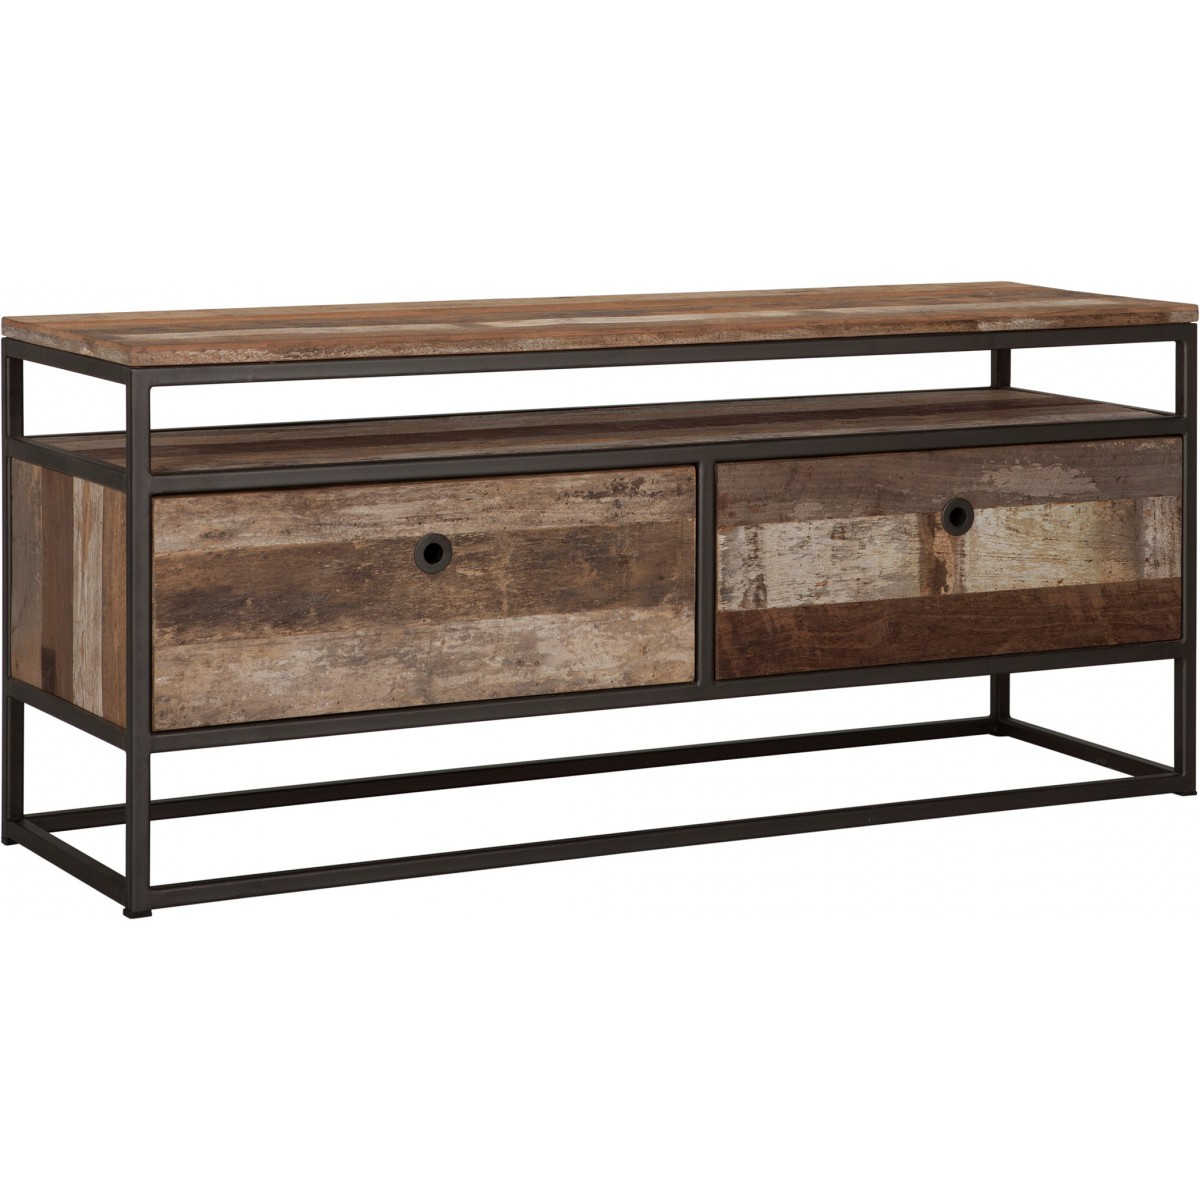 tuareg-dressoir-tv-meubel-no2-2-laden-55x125x40-cm-2-miltonhouse